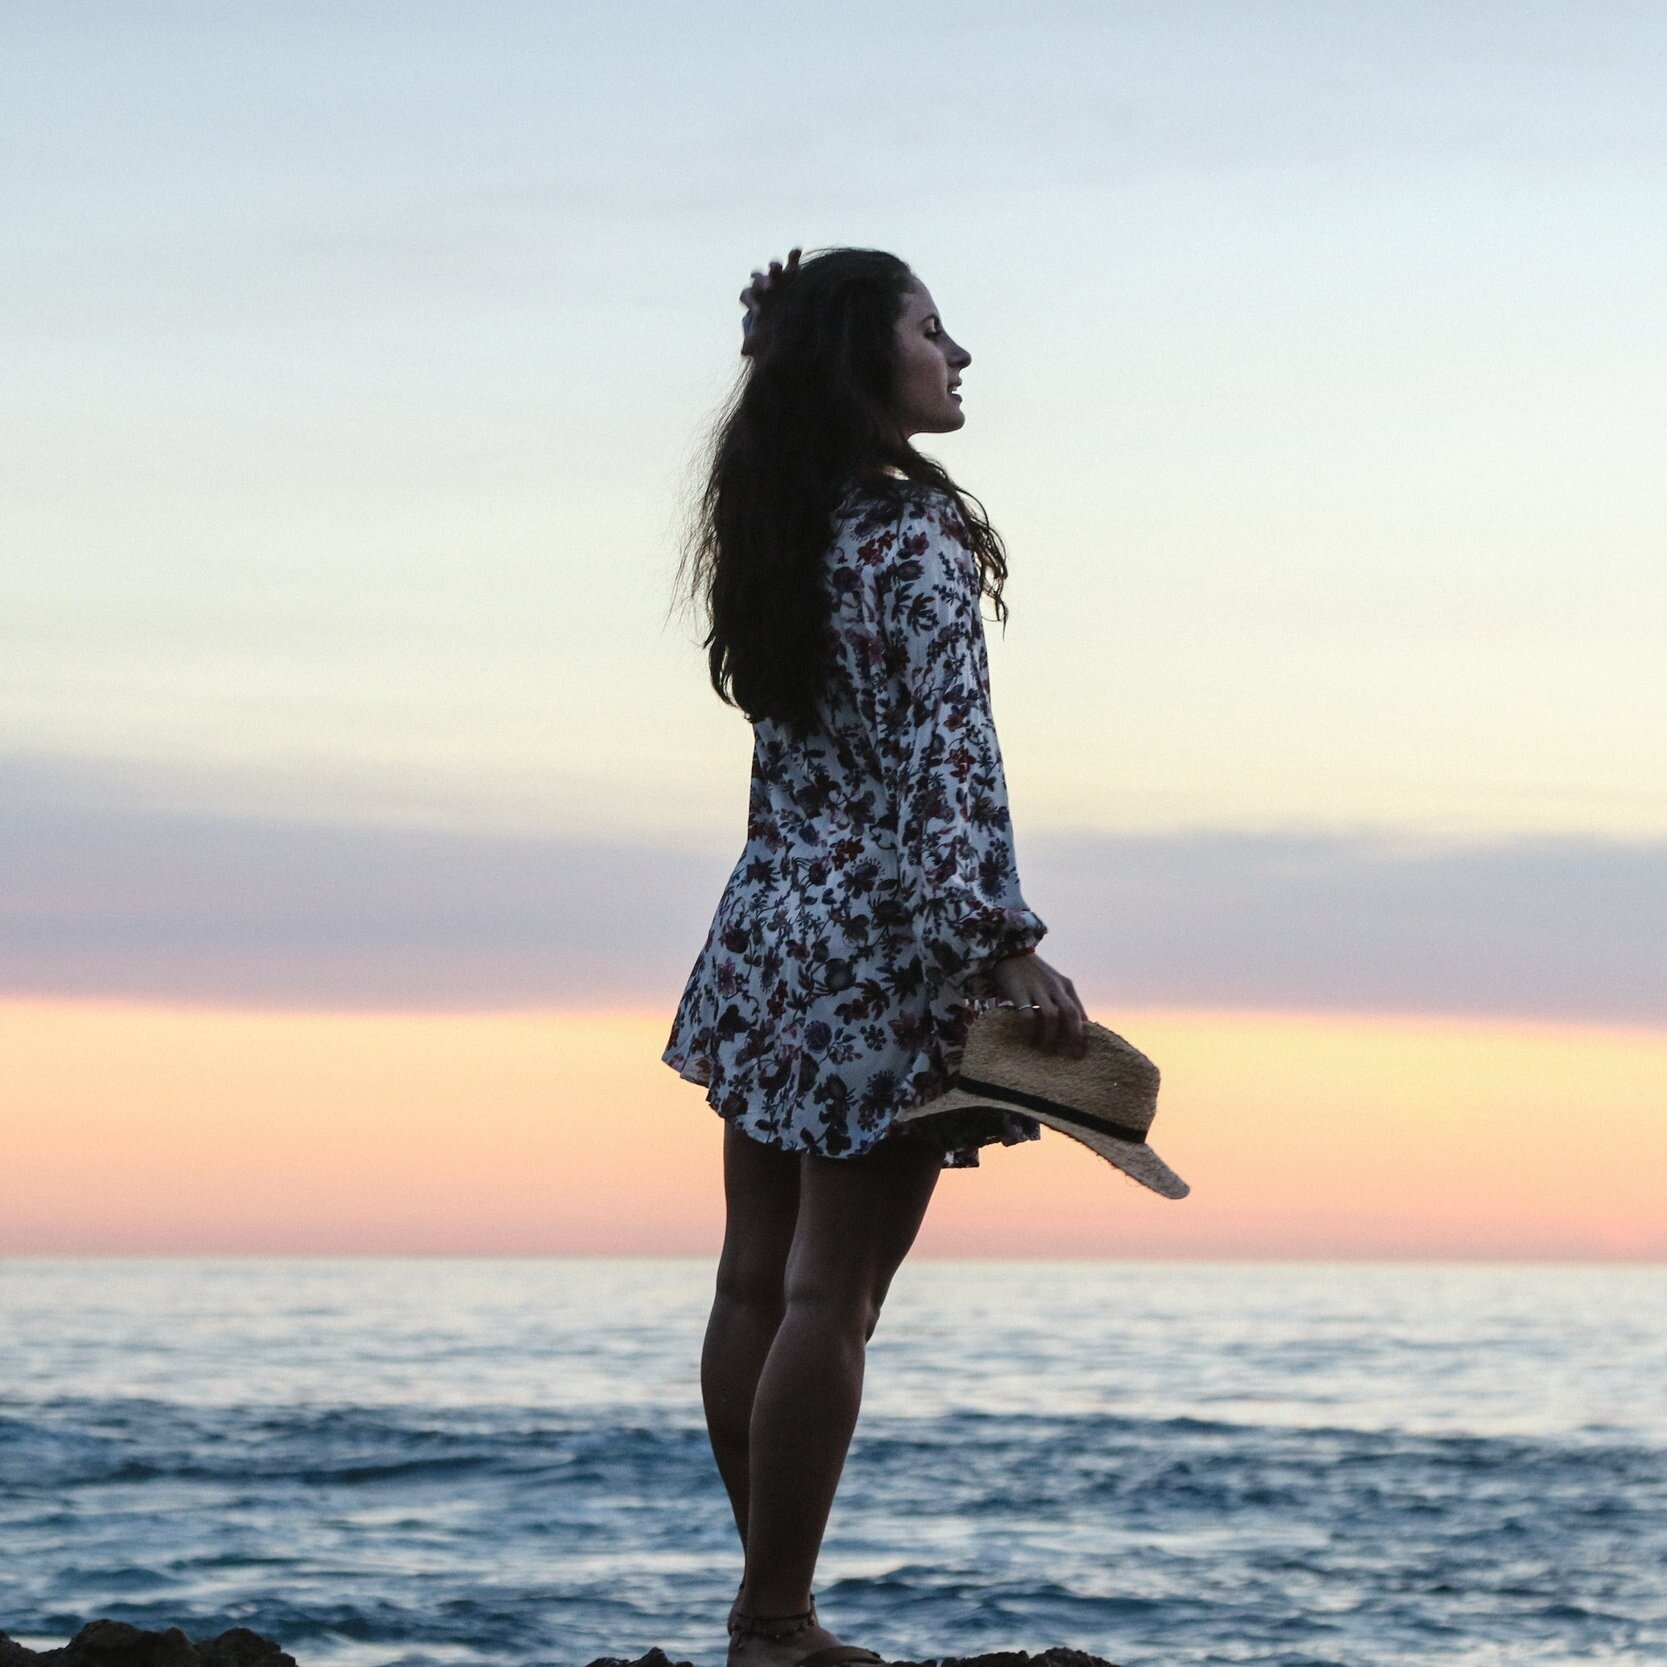 Mixed Feelings About My Body - read more at thekindredvoice.com